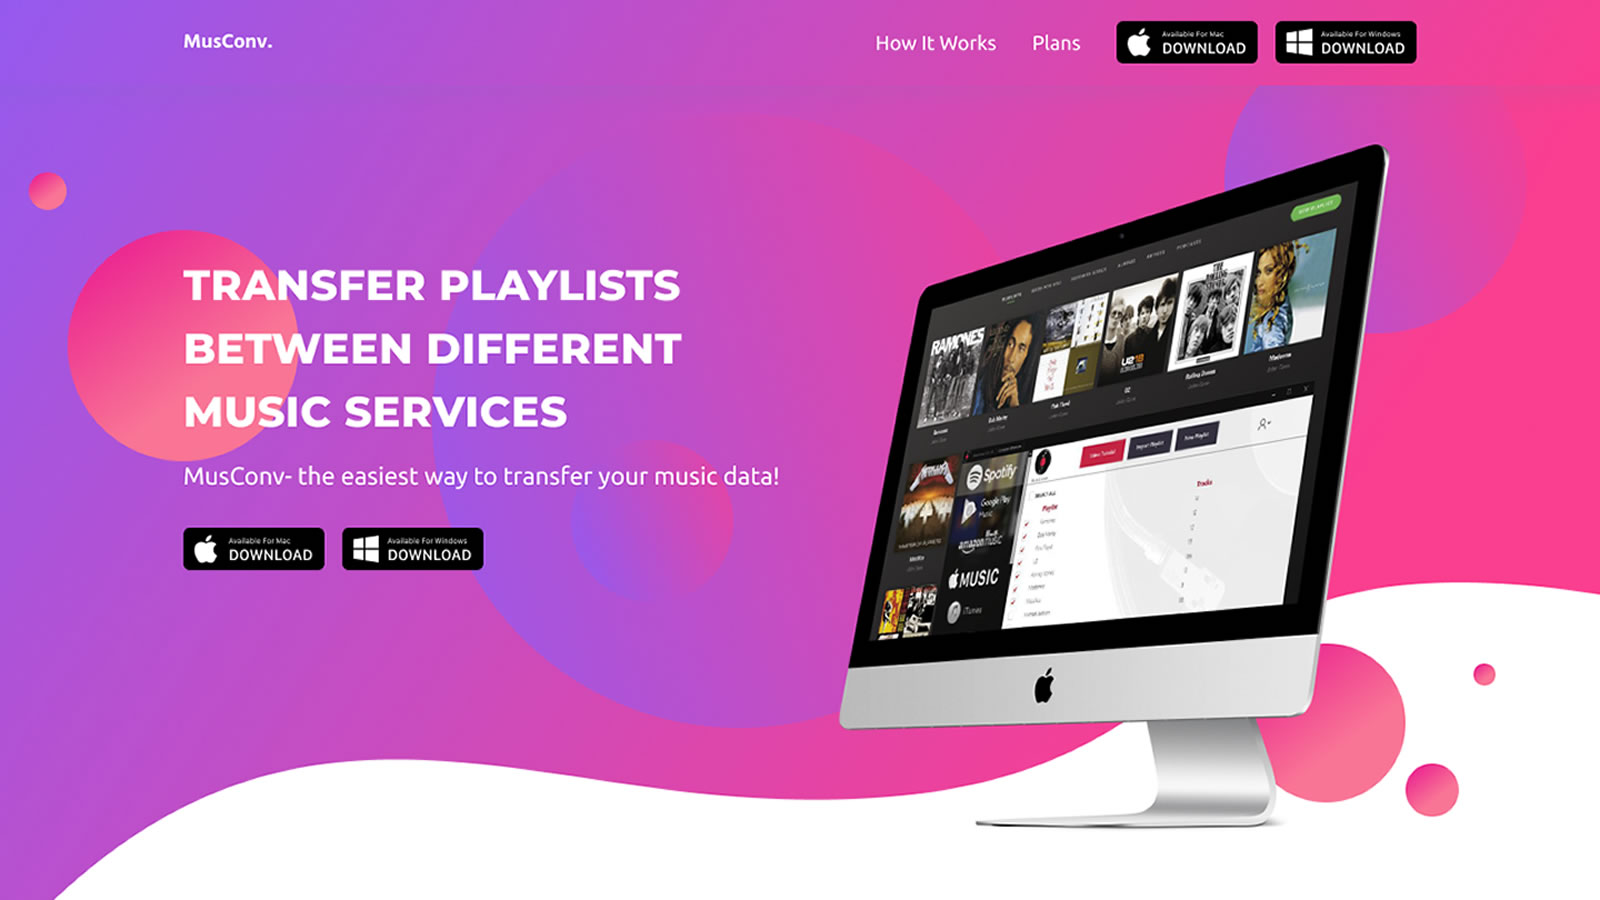 Musconv: Transfer Playlist Between Different Music Services